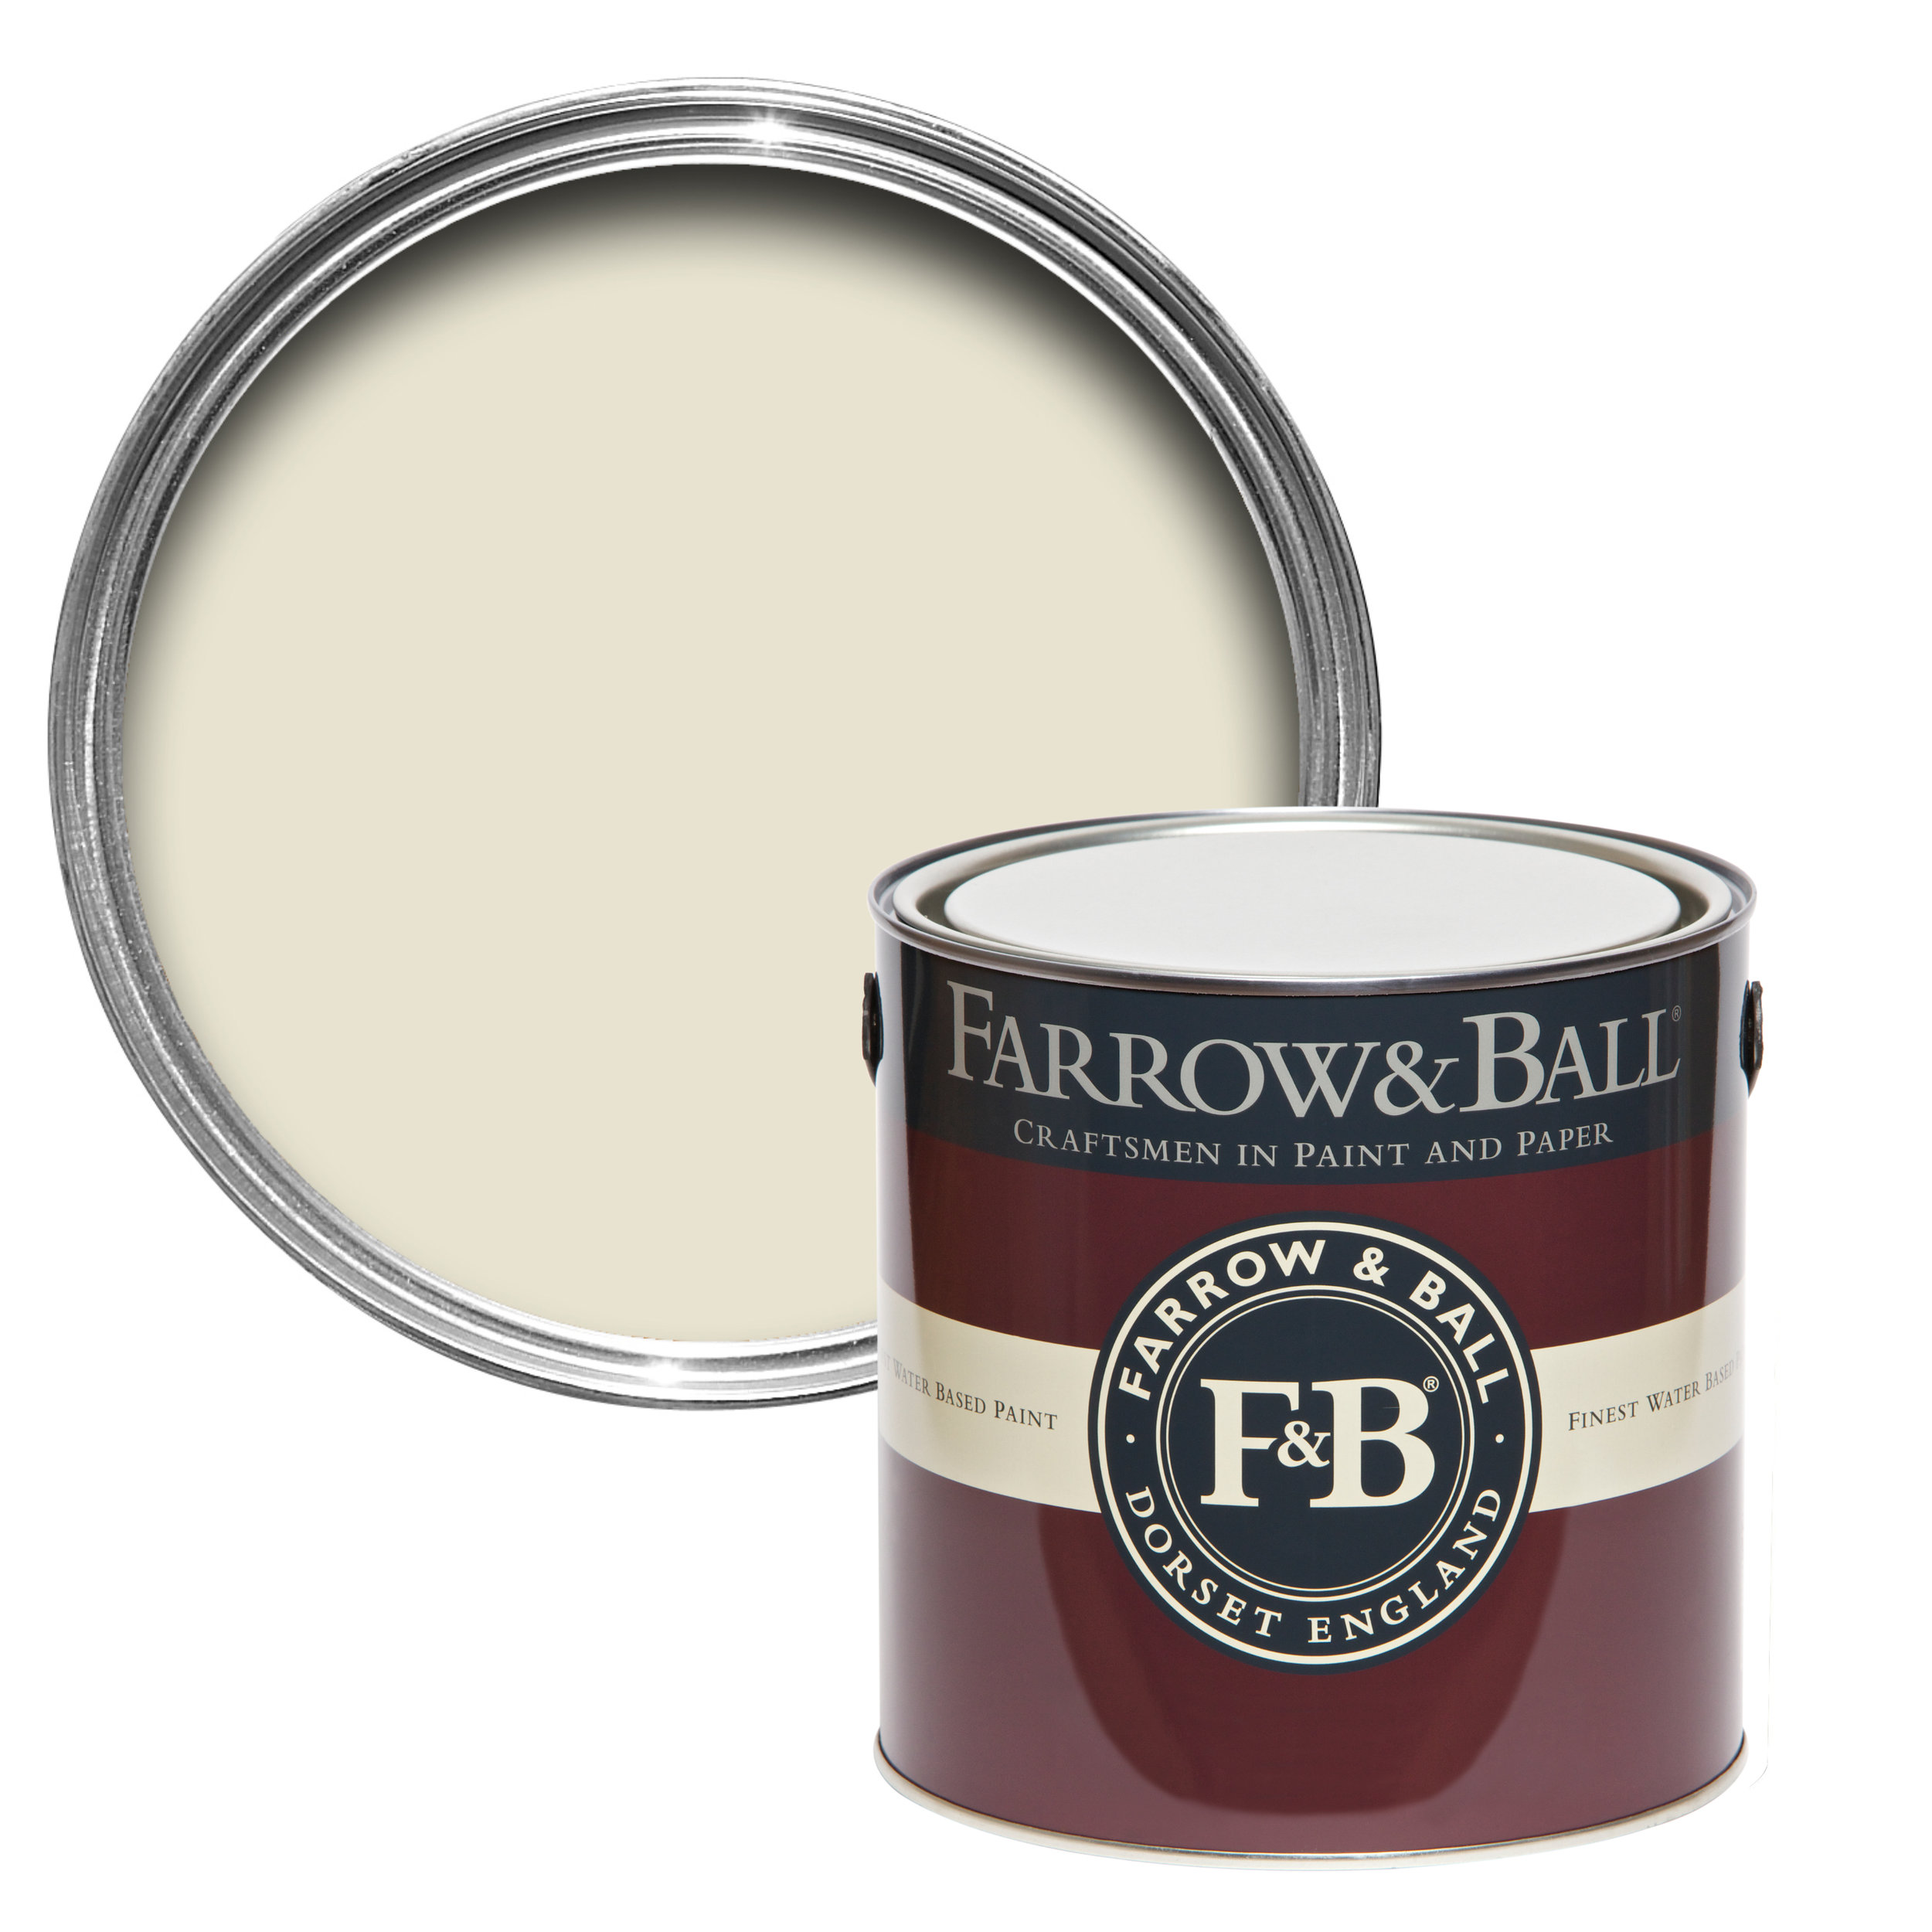 James White paint by Farrow & Ball